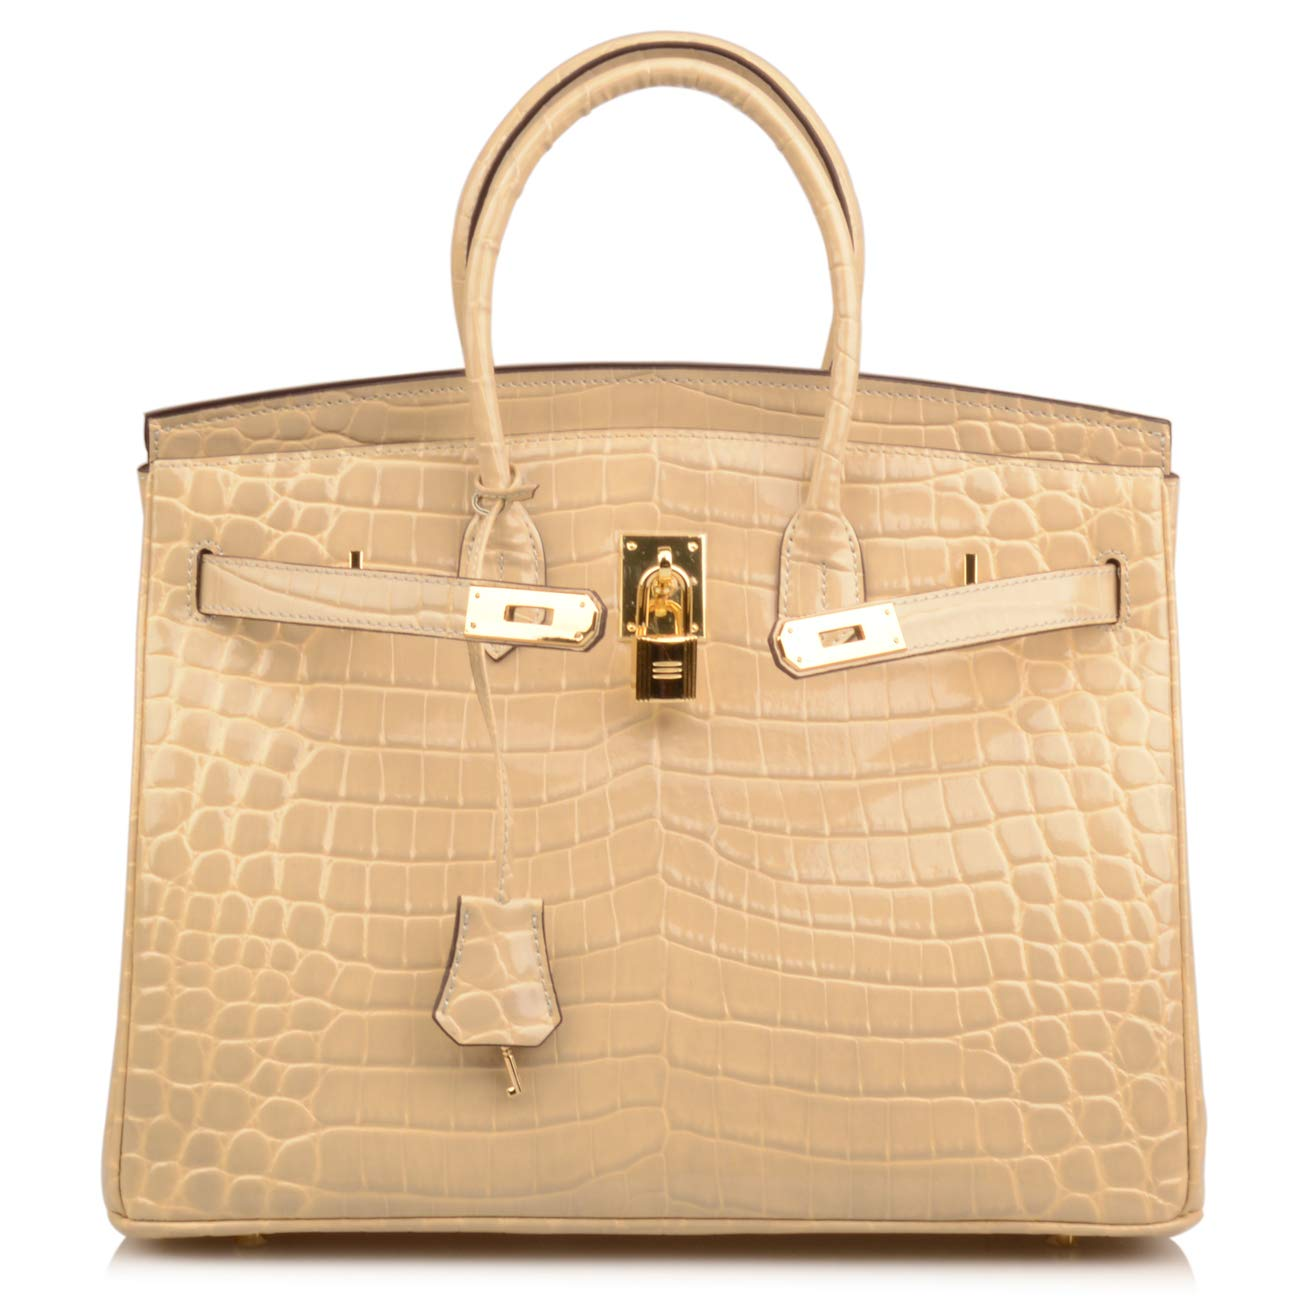 Qidell Women's Padlock Patent Leather Crocodile Embossed Handbag On Clearance (35 cm.Taupe)